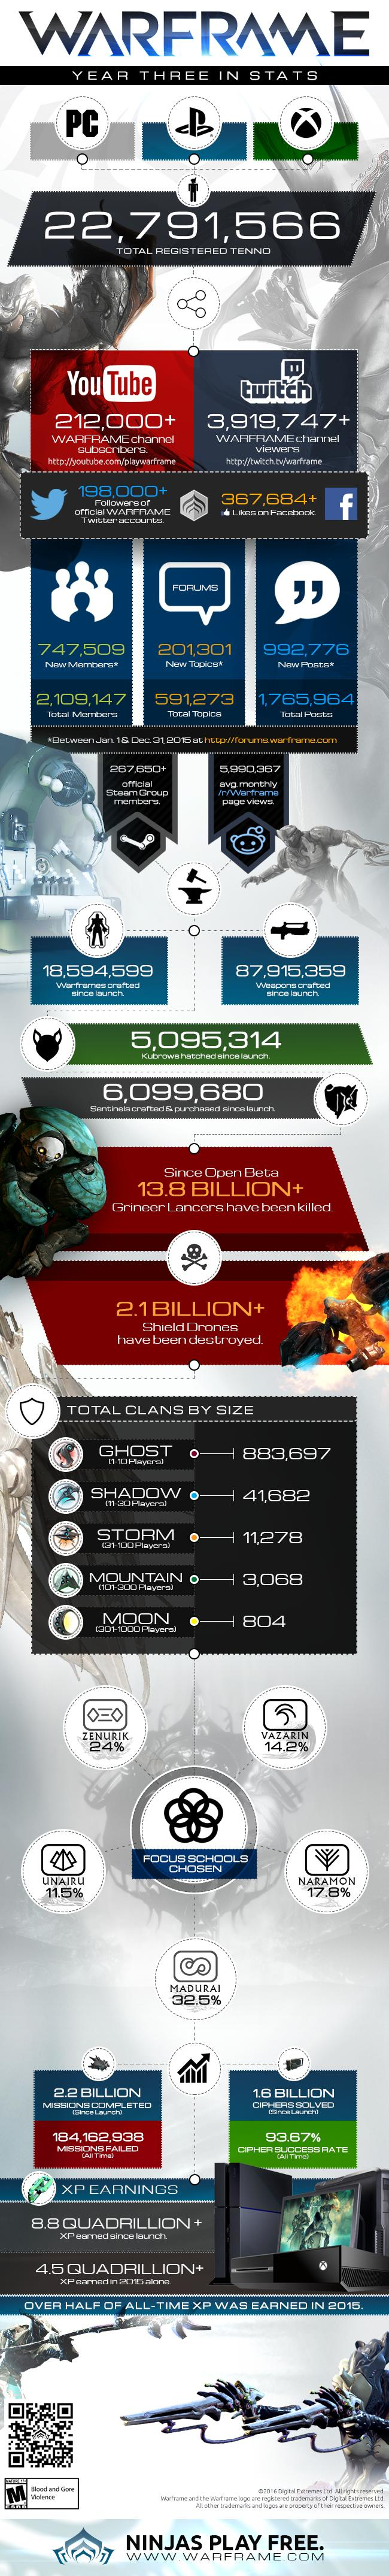 Warframe_Infographic_Year3